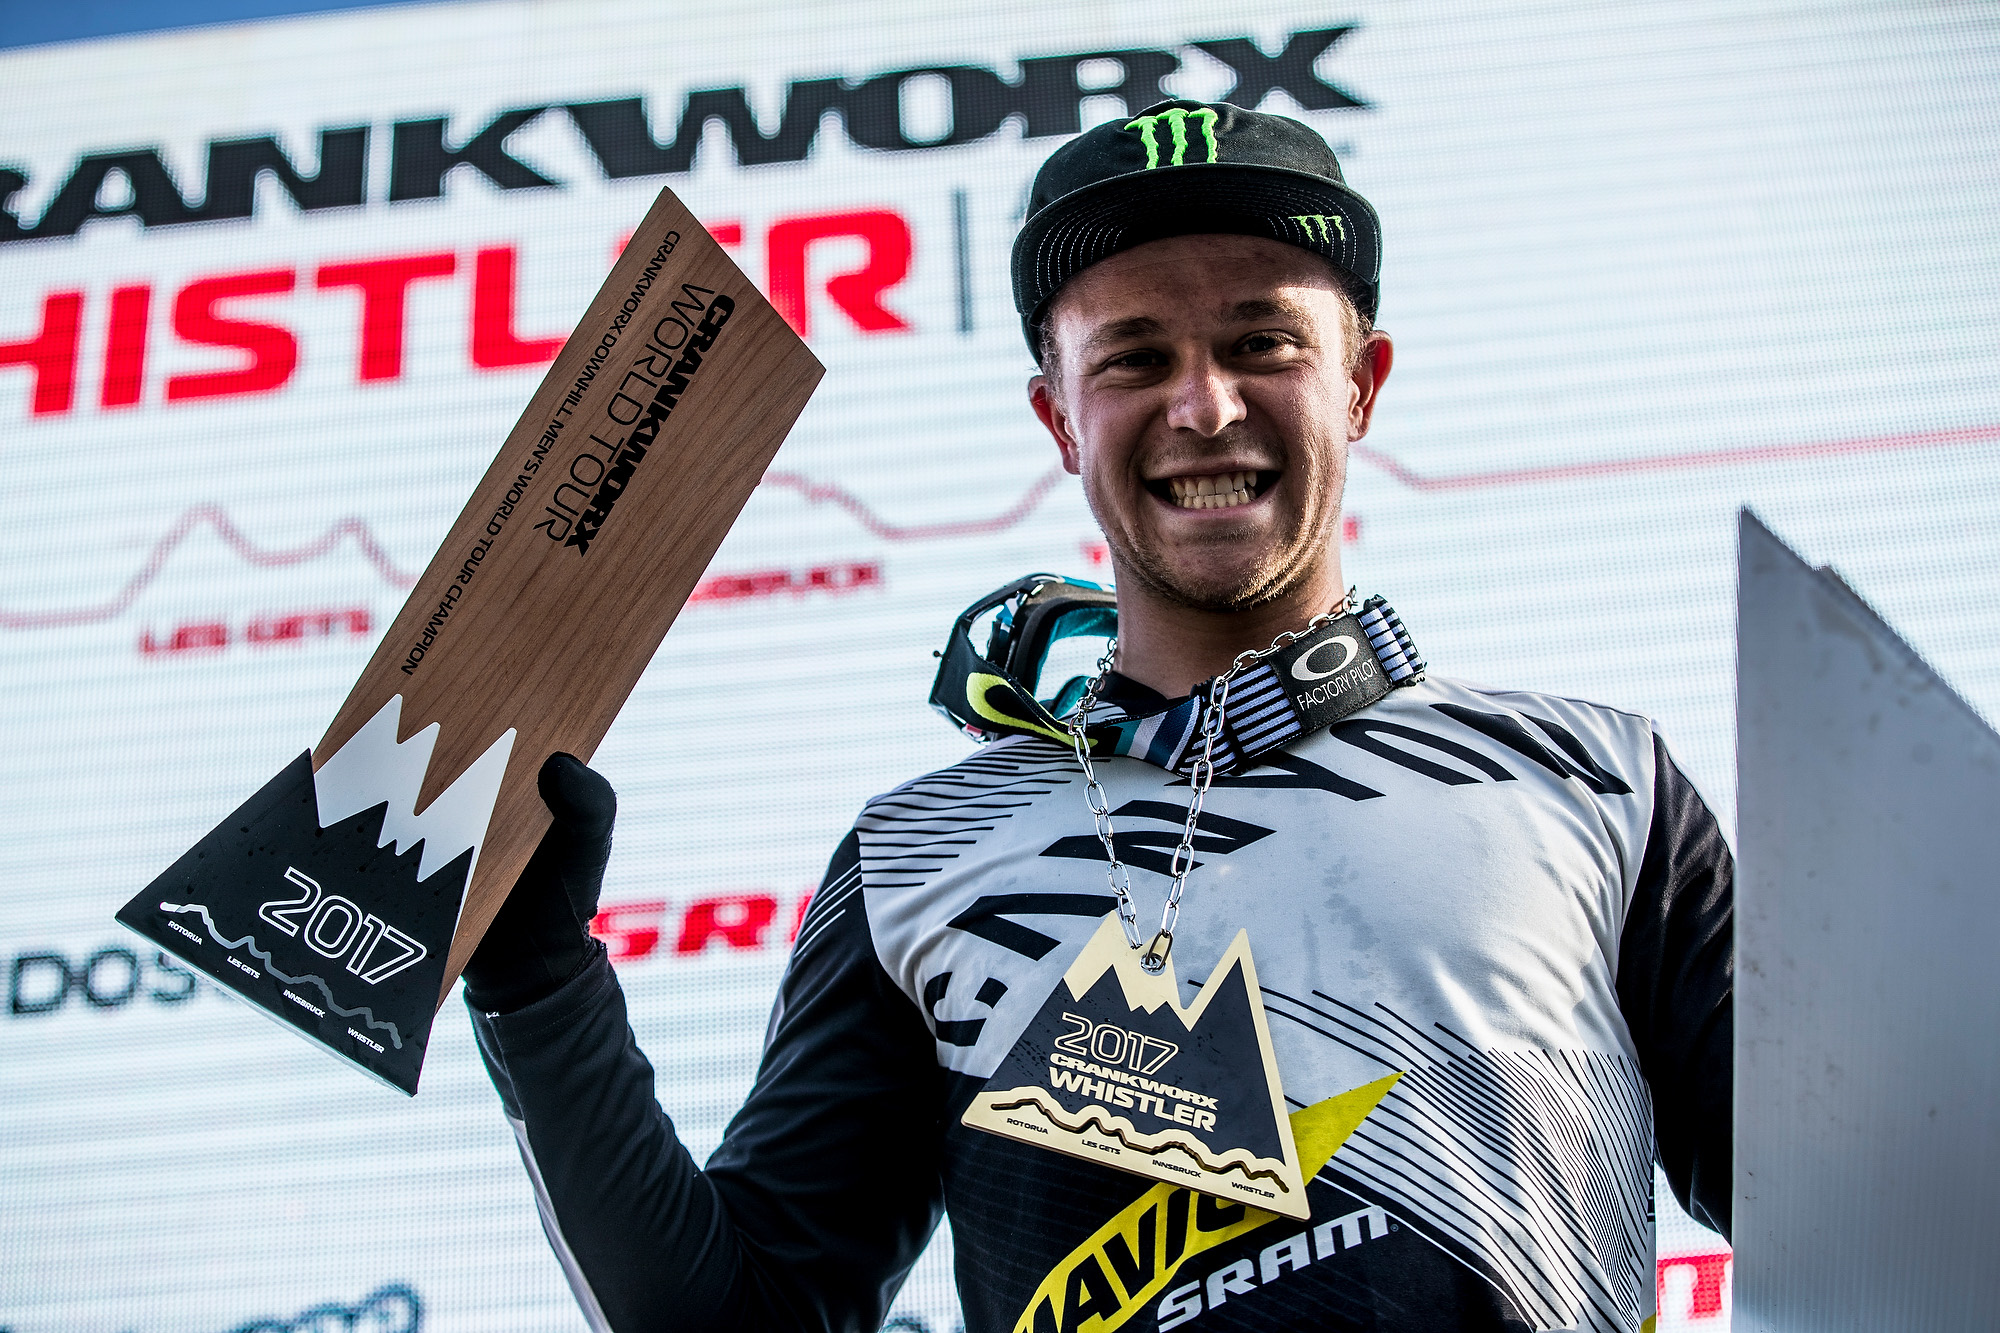 crankworx custom trophy award and medals